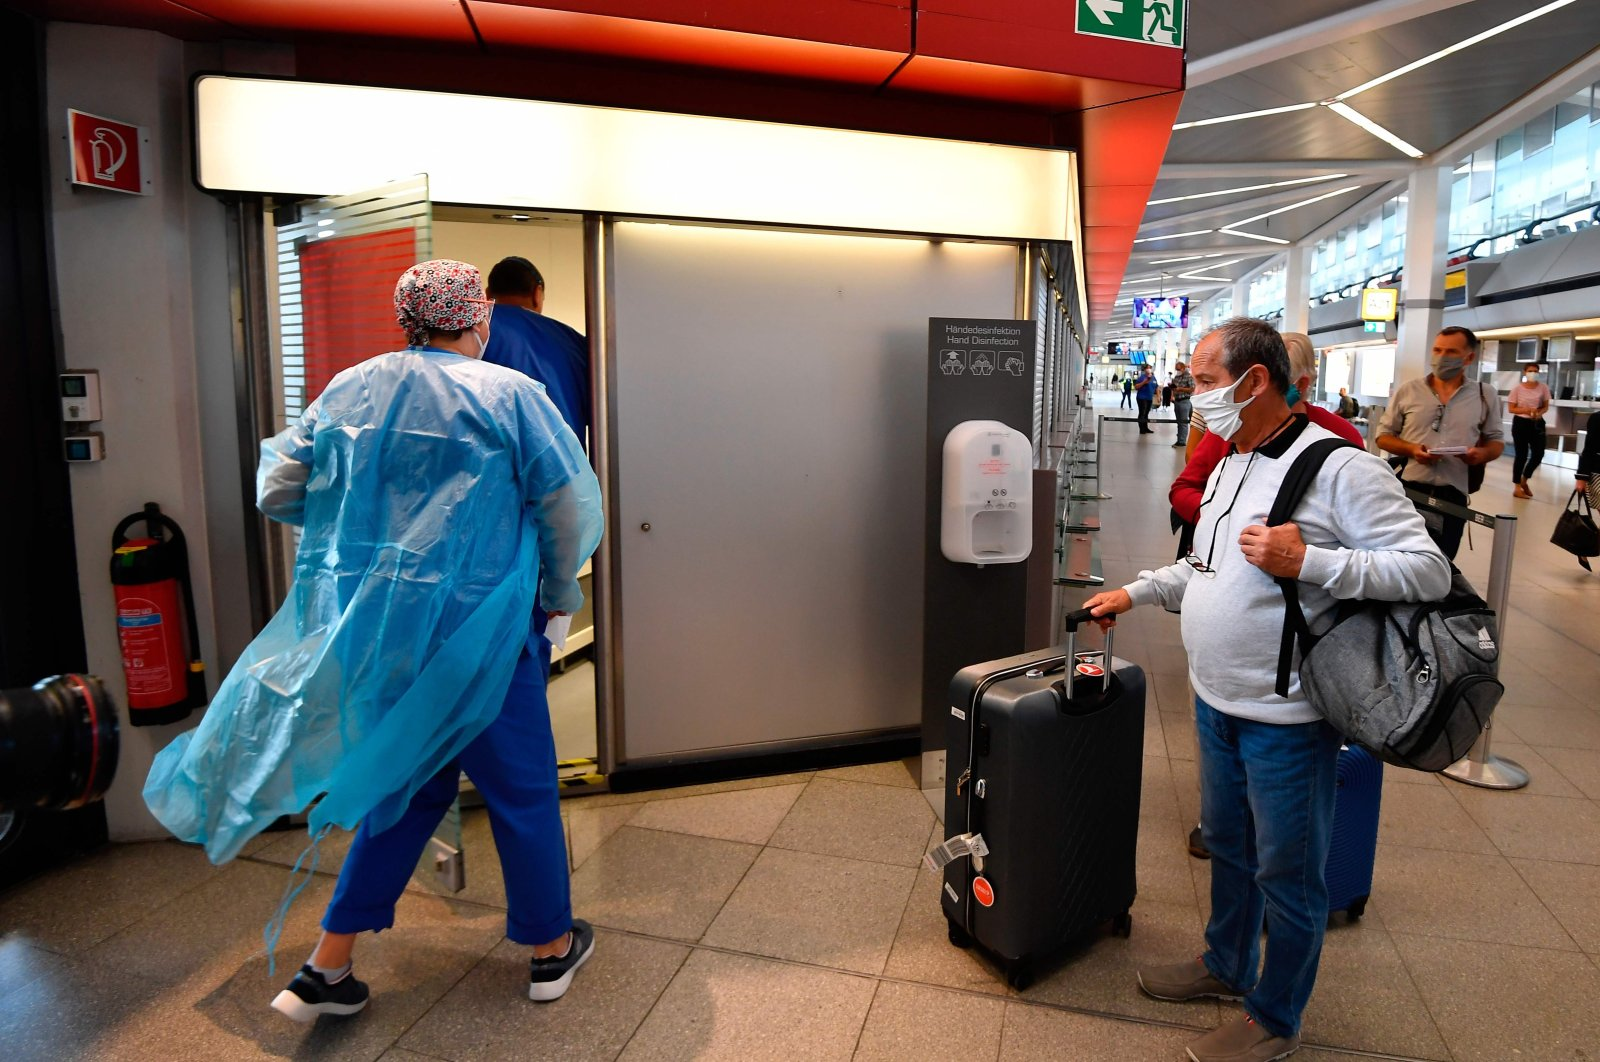 A passenger waits at a test station for the novel coronavirus that can cause the COVID-19 disease at terminal A of Berlin Tegel airport on July 29, 2020. (AFP Photo)